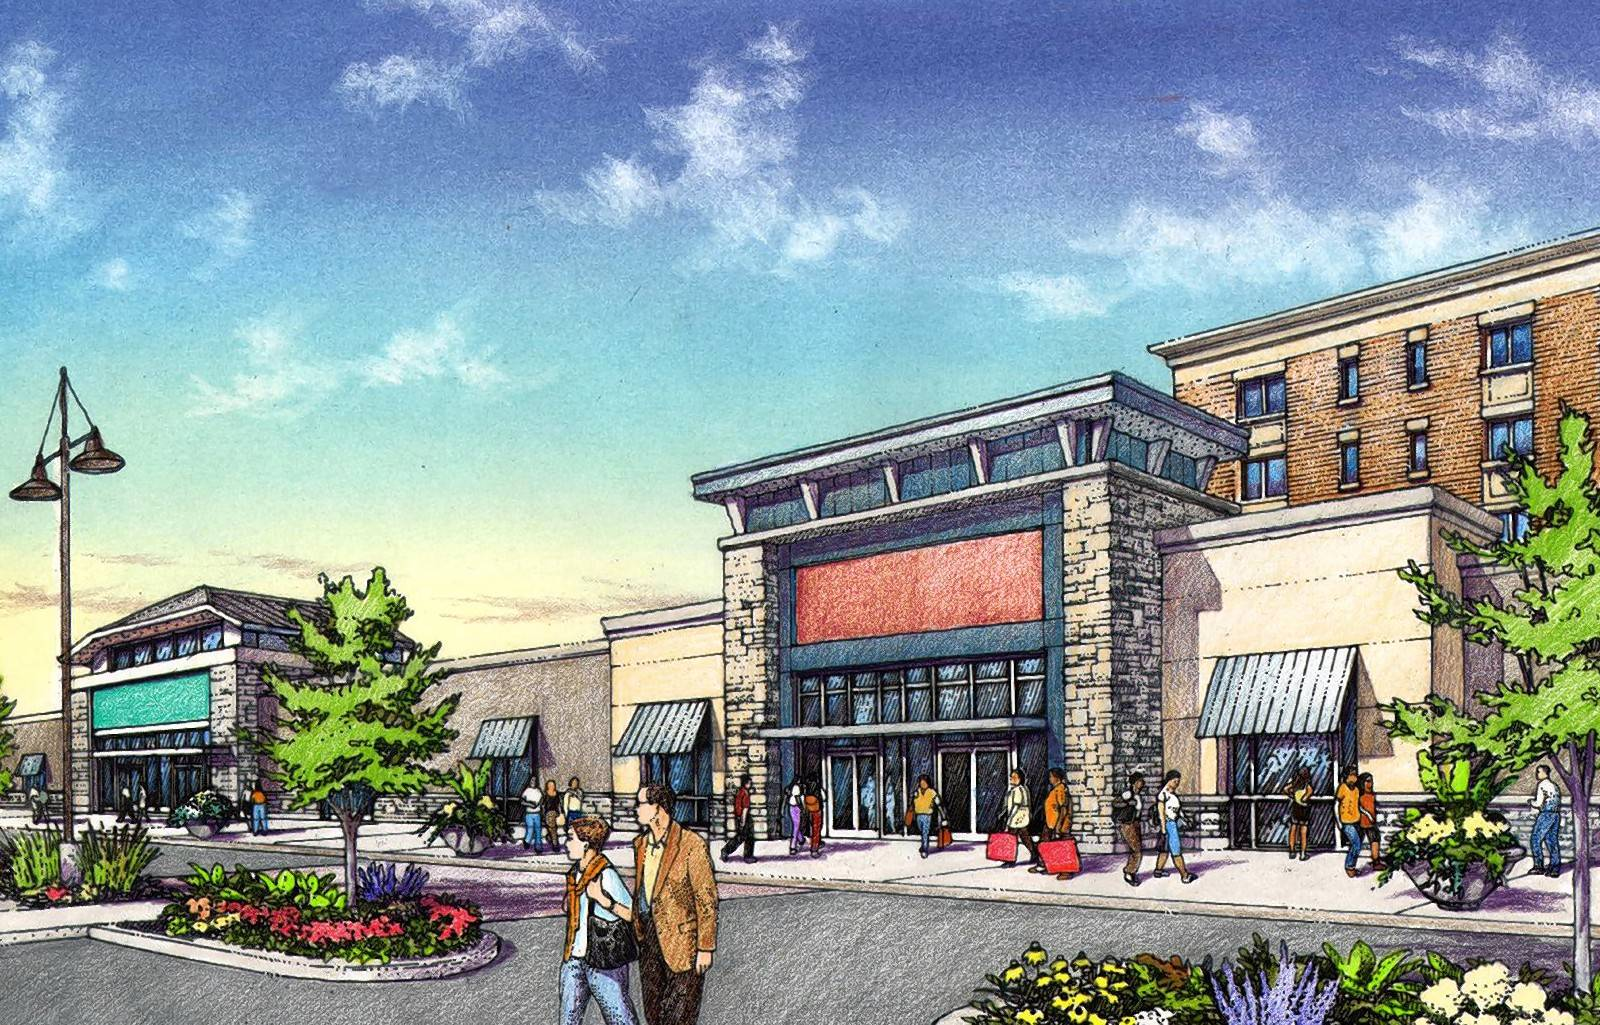 The Shops of Sabre Woods is one component of a new senior living/commercial development on the site of the former Sabre Room in Hickory Hills.